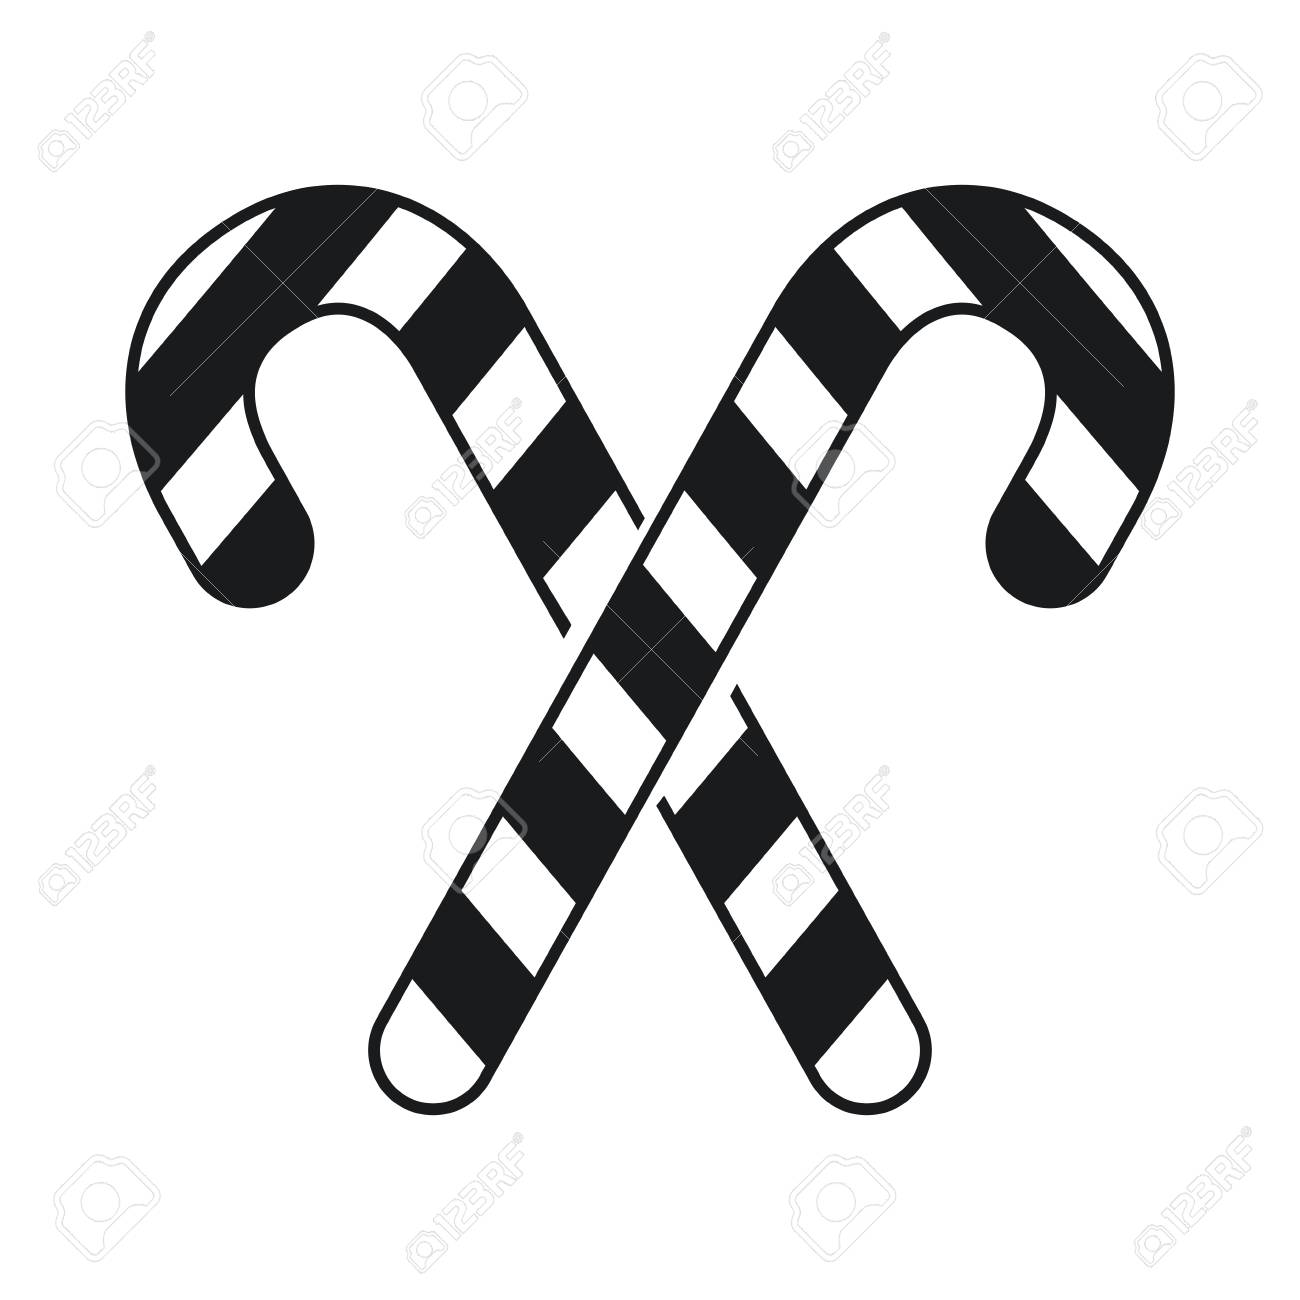 Book Black And White png download - 3509*6636 - Free Transparent Candy Cane  png Download. - CleanPNG / KissPNG